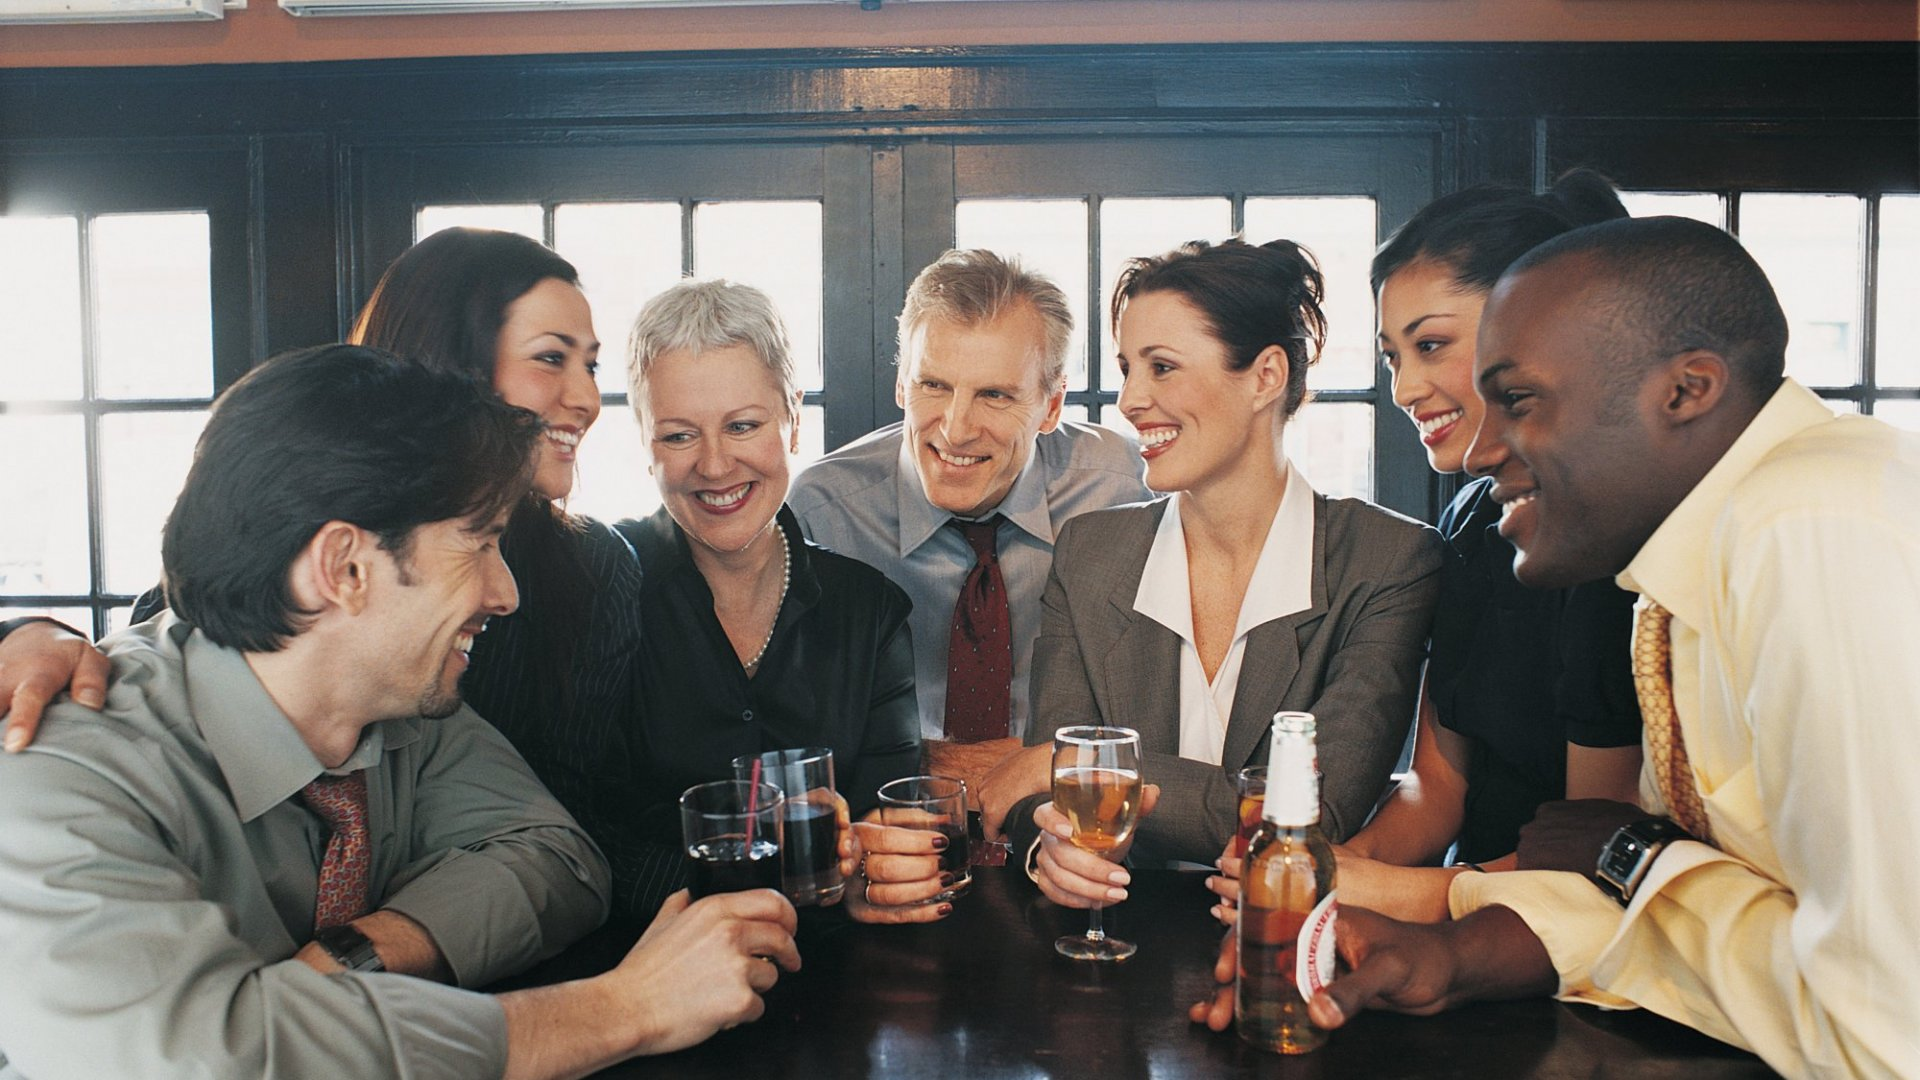 New Study: How Your Drinking Is Related to Your Social Network